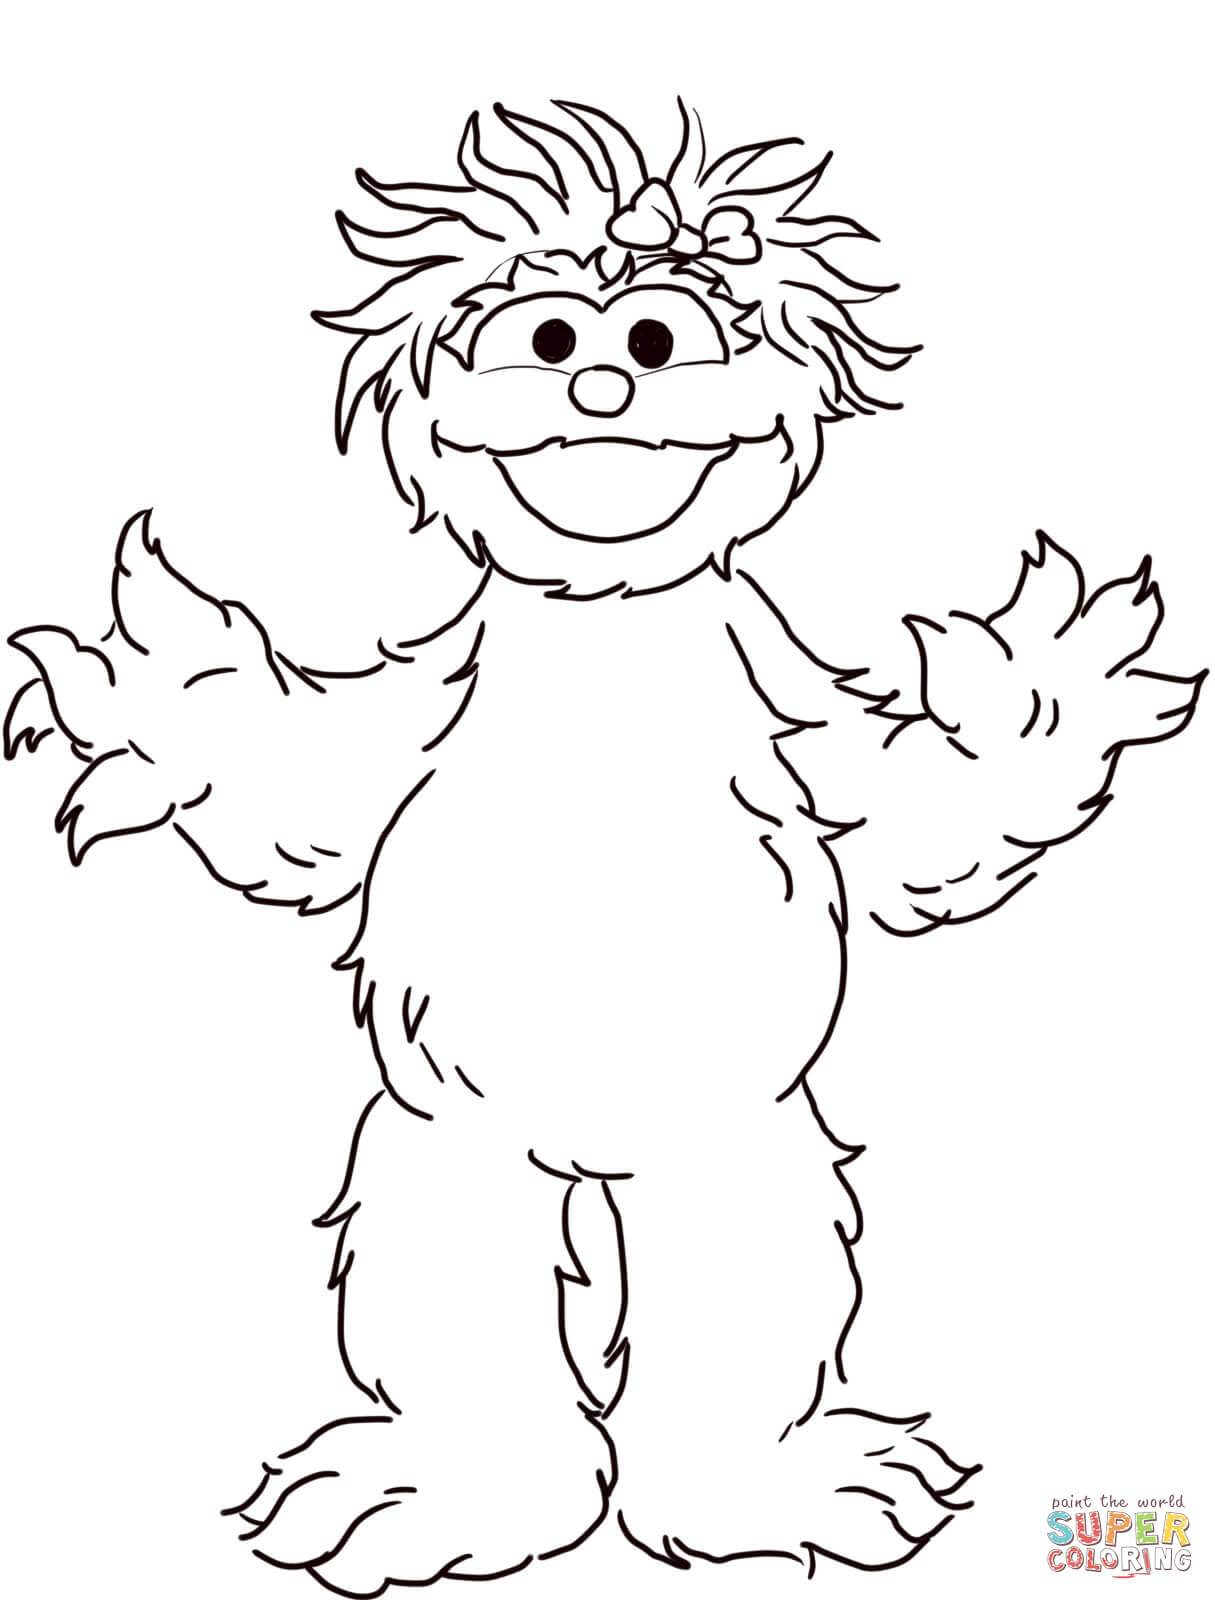 Rosita clipart vector black and white library Sesame street rosita clipart 4 » Clipart Portal vector black and white library